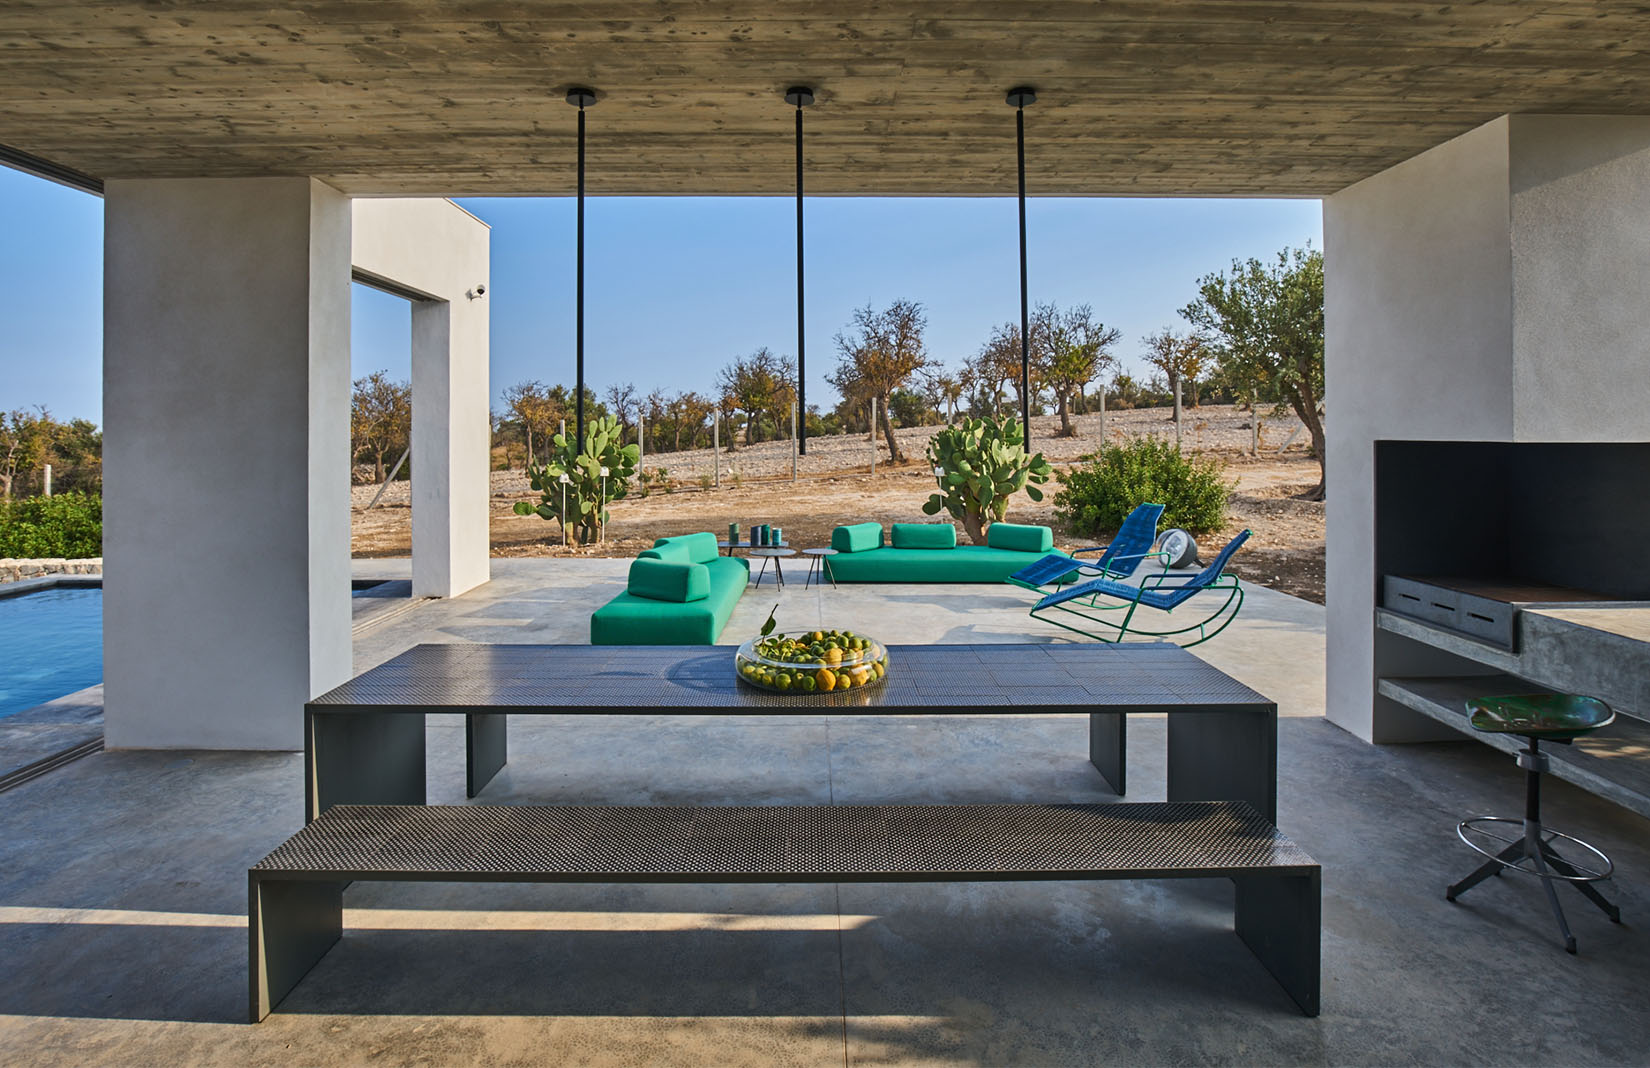 Holiday home of the week: a rugged Sicilian retreat near Noto